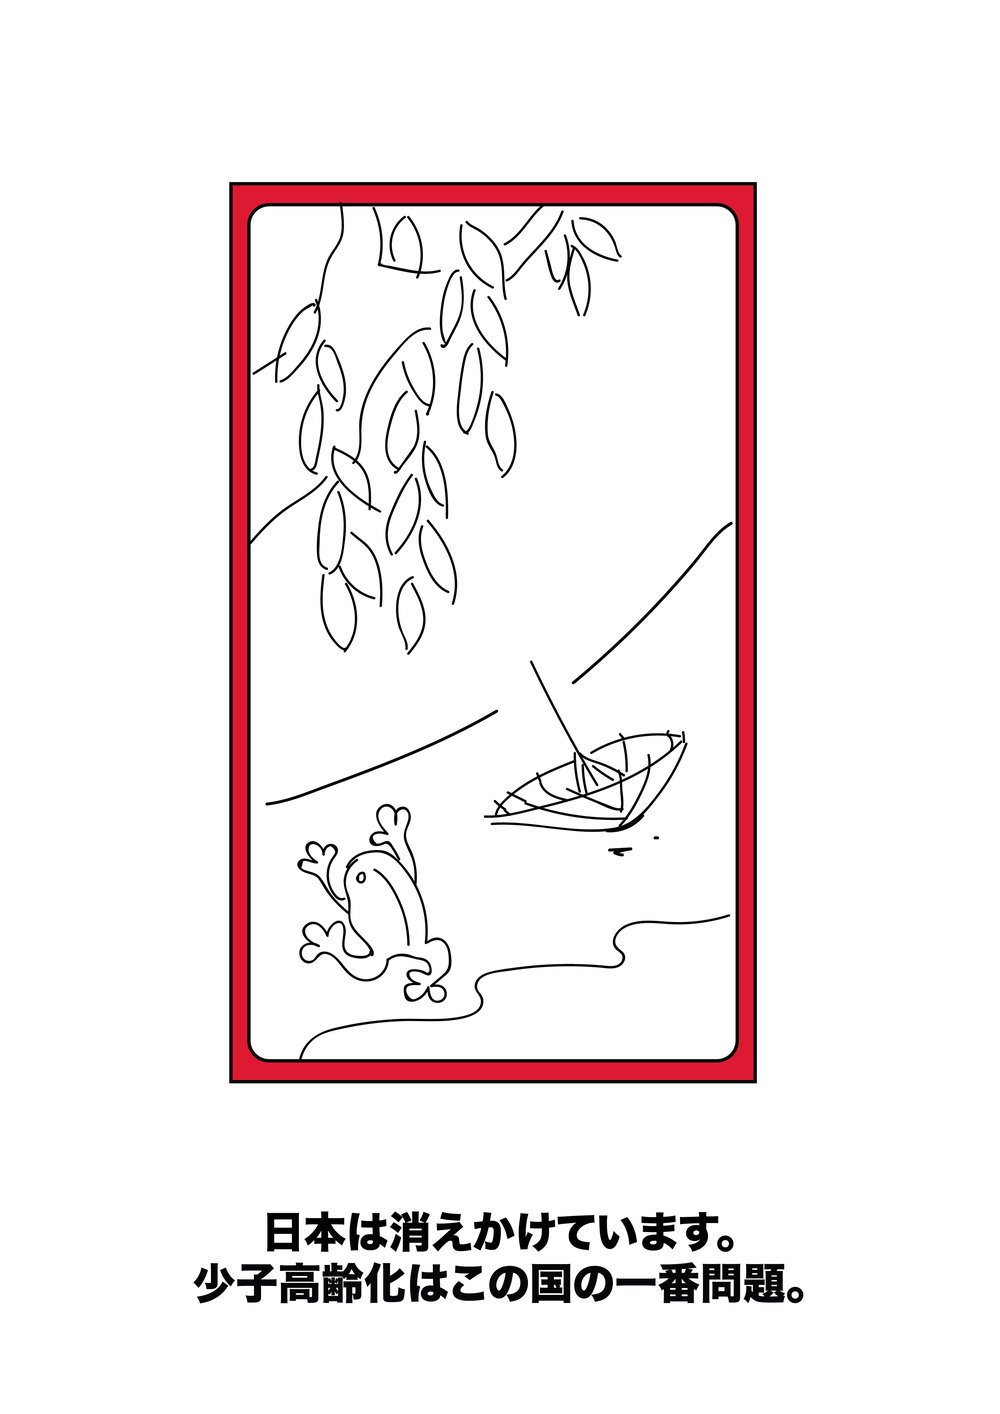 English: Japan is disappearing. The Aging Population and Declining Birthrate Issue is everyone's problem. [a traditional Japanese 'hanafuda' card is depicted, without the rainman holding the umbrella.]